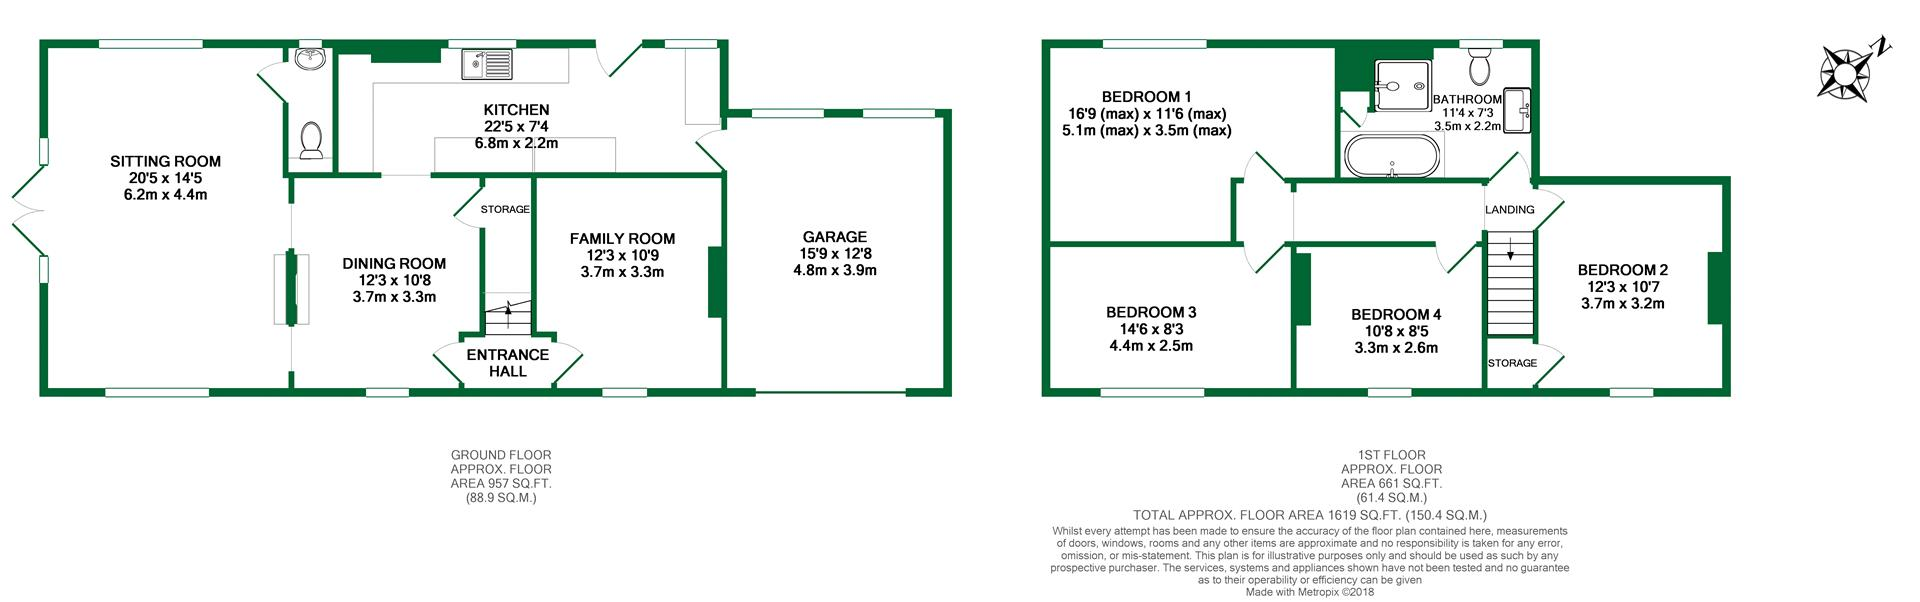 Floorplans For Westend, Waltham St Lawrence